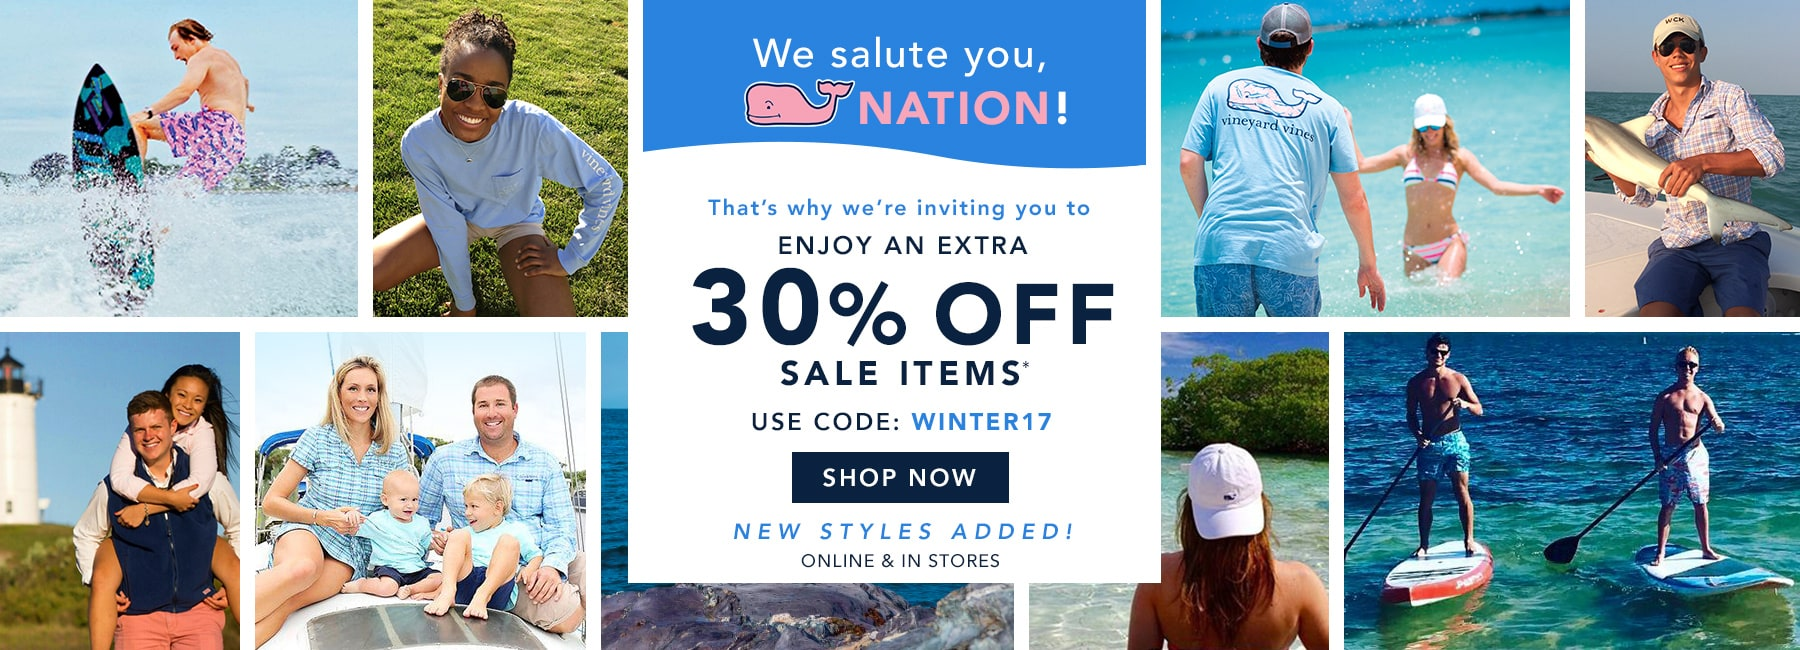 30% off sale items. Use code WINTER17. Shop Now.